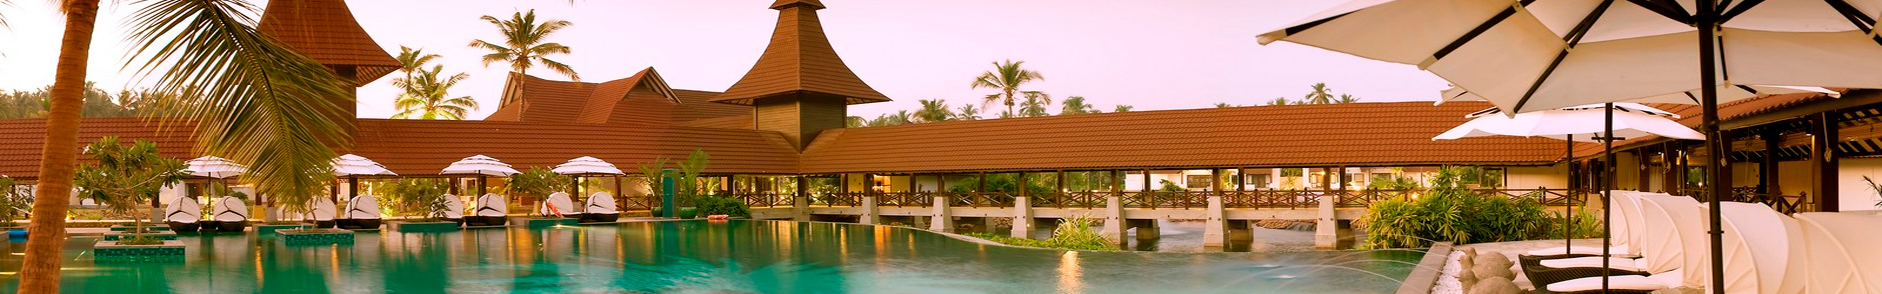 Club Mahindra Cherai Beach Resort, Kerala